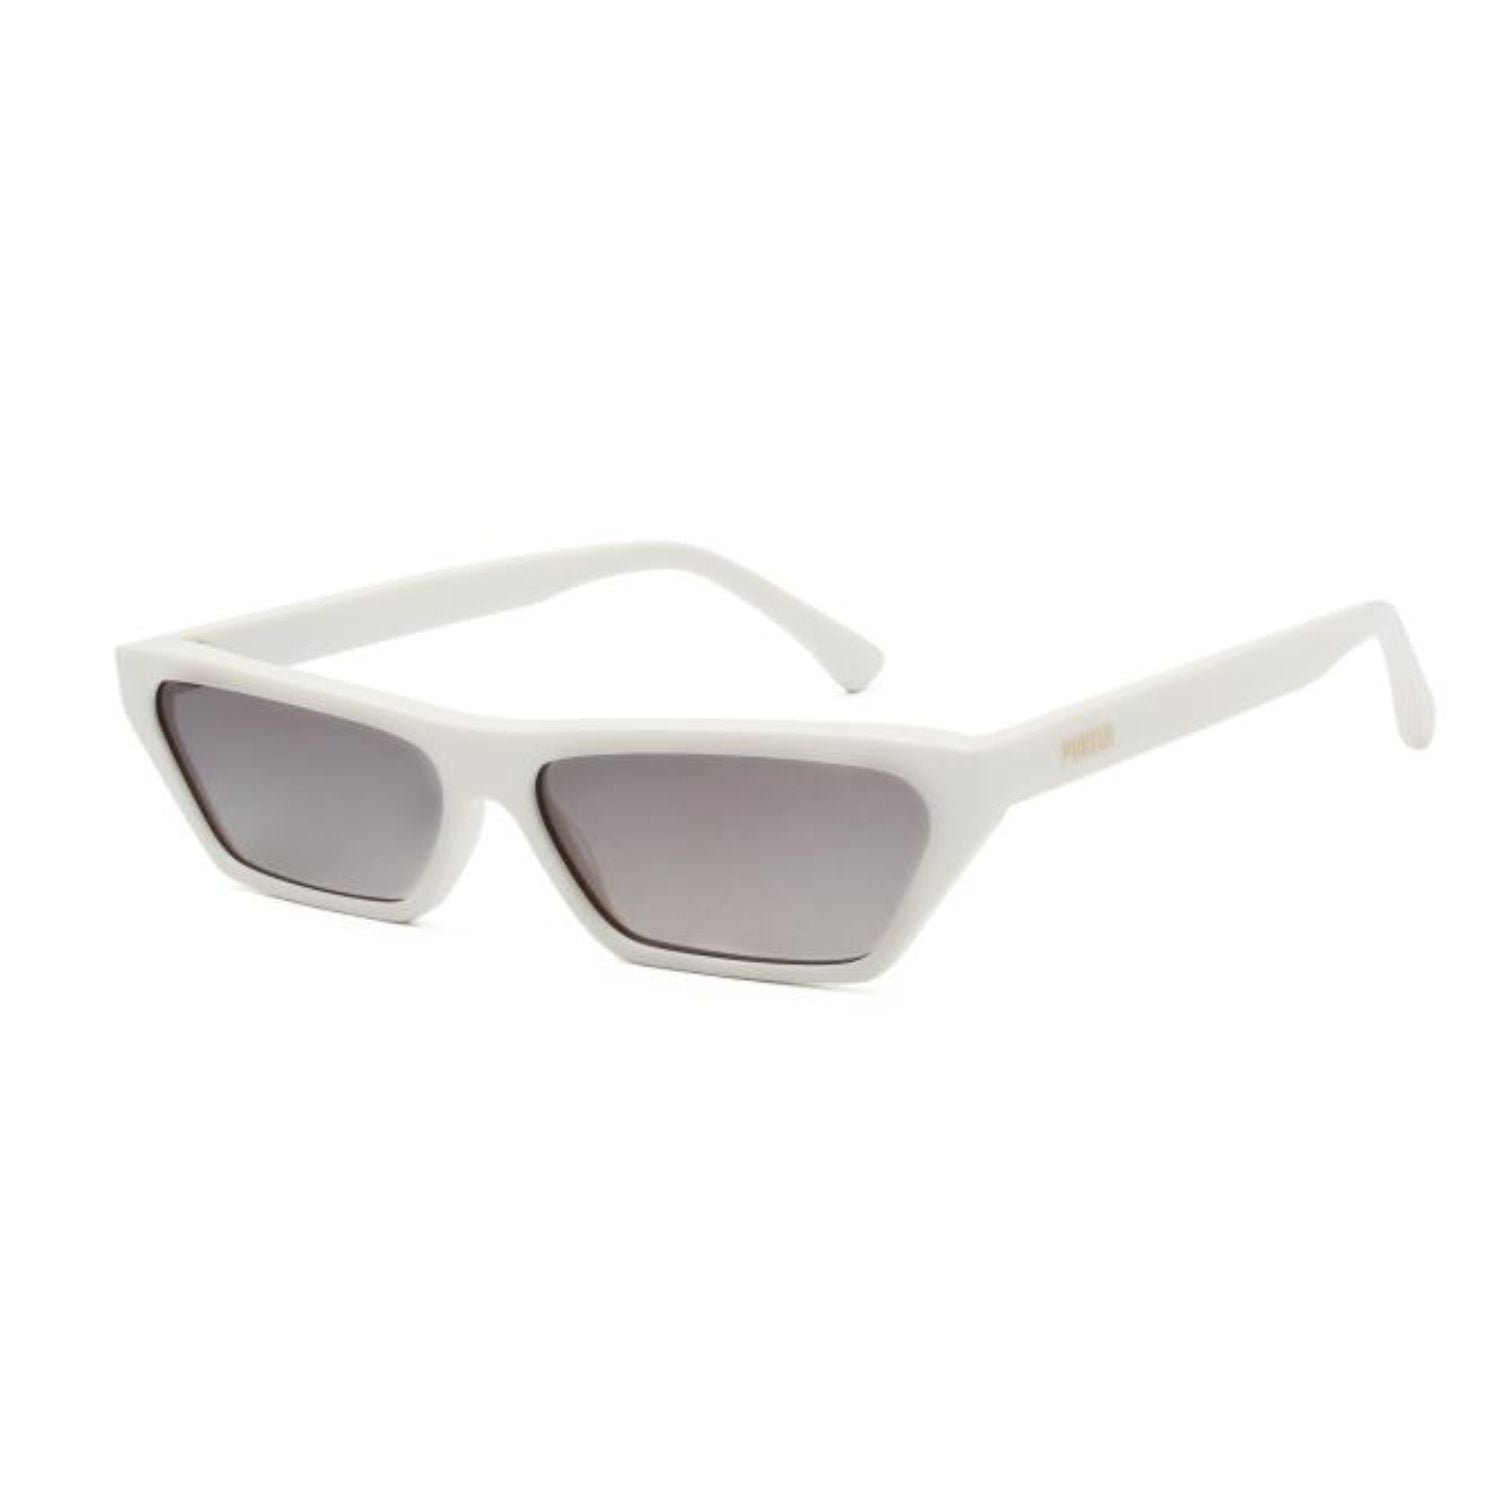 SA3 - Retro Slim Rectangle Cat Eye Fashion Sunglasses - Iris Fashion Inc. | Wholesale Sunglasses and Glasses